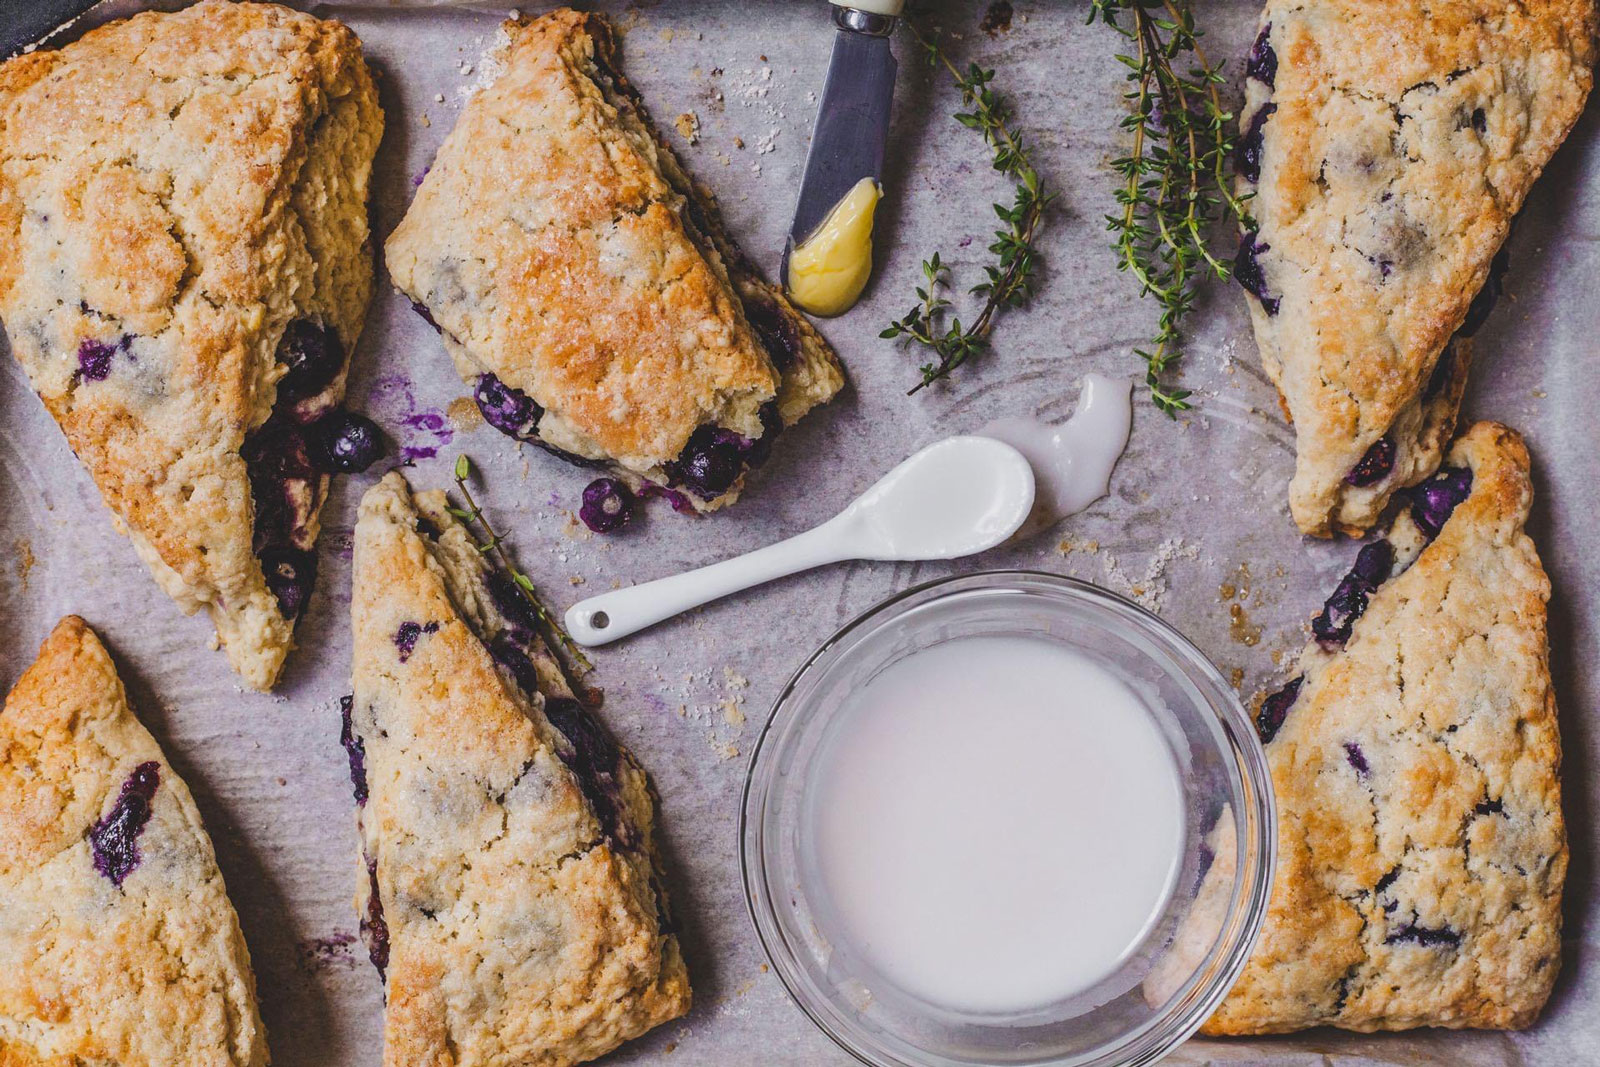 Buttery Blueberry Scones With A Thyme Glaze